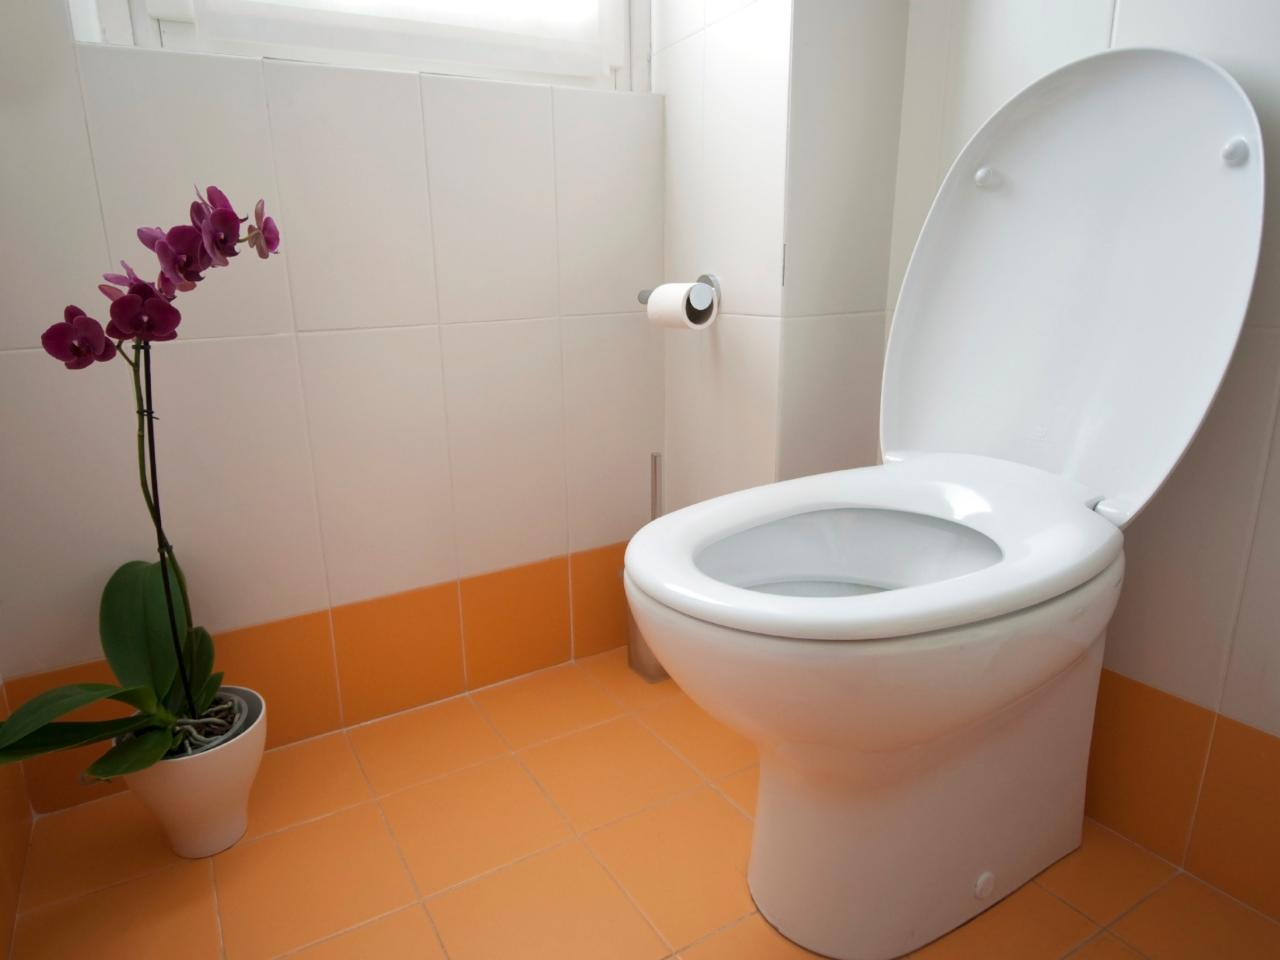 Install A Toilet How To Install A New Toilet 9 Steps Hirerush Blog